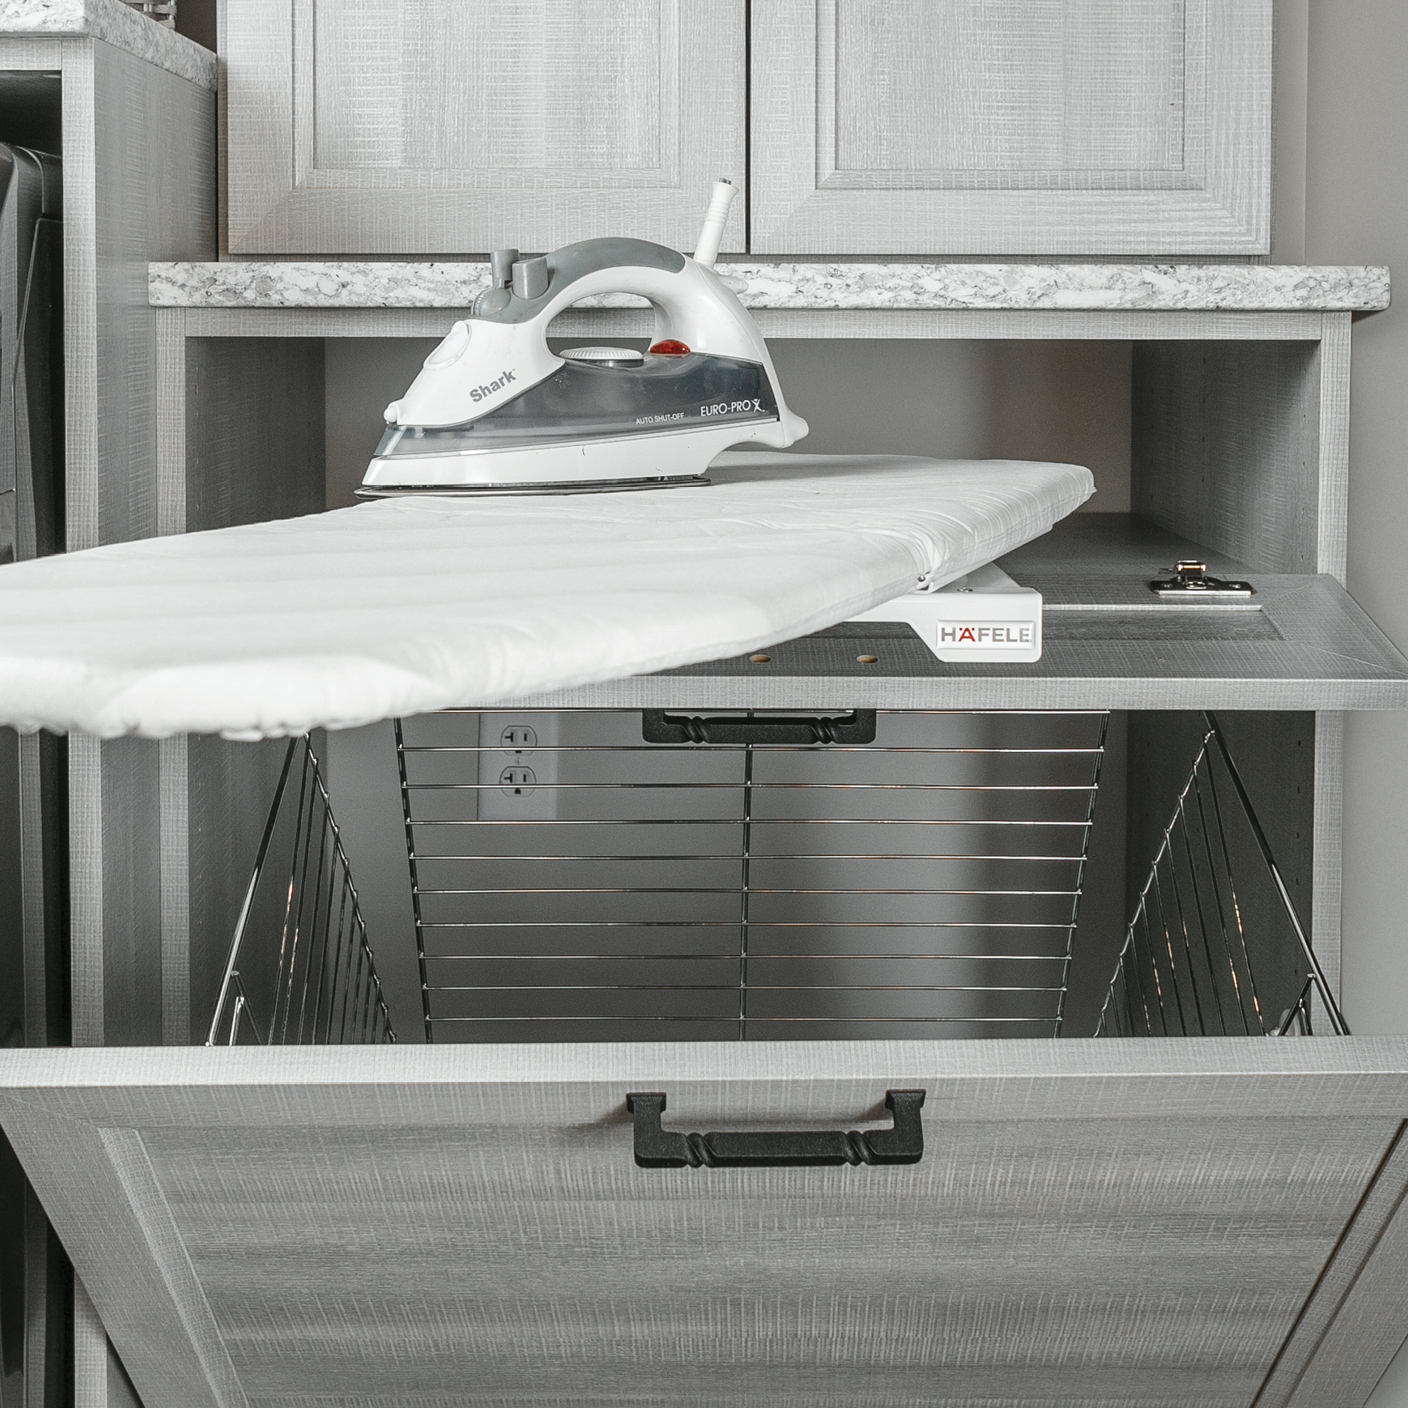 Pull out ironing board and hamper solutions from Inspired Closets